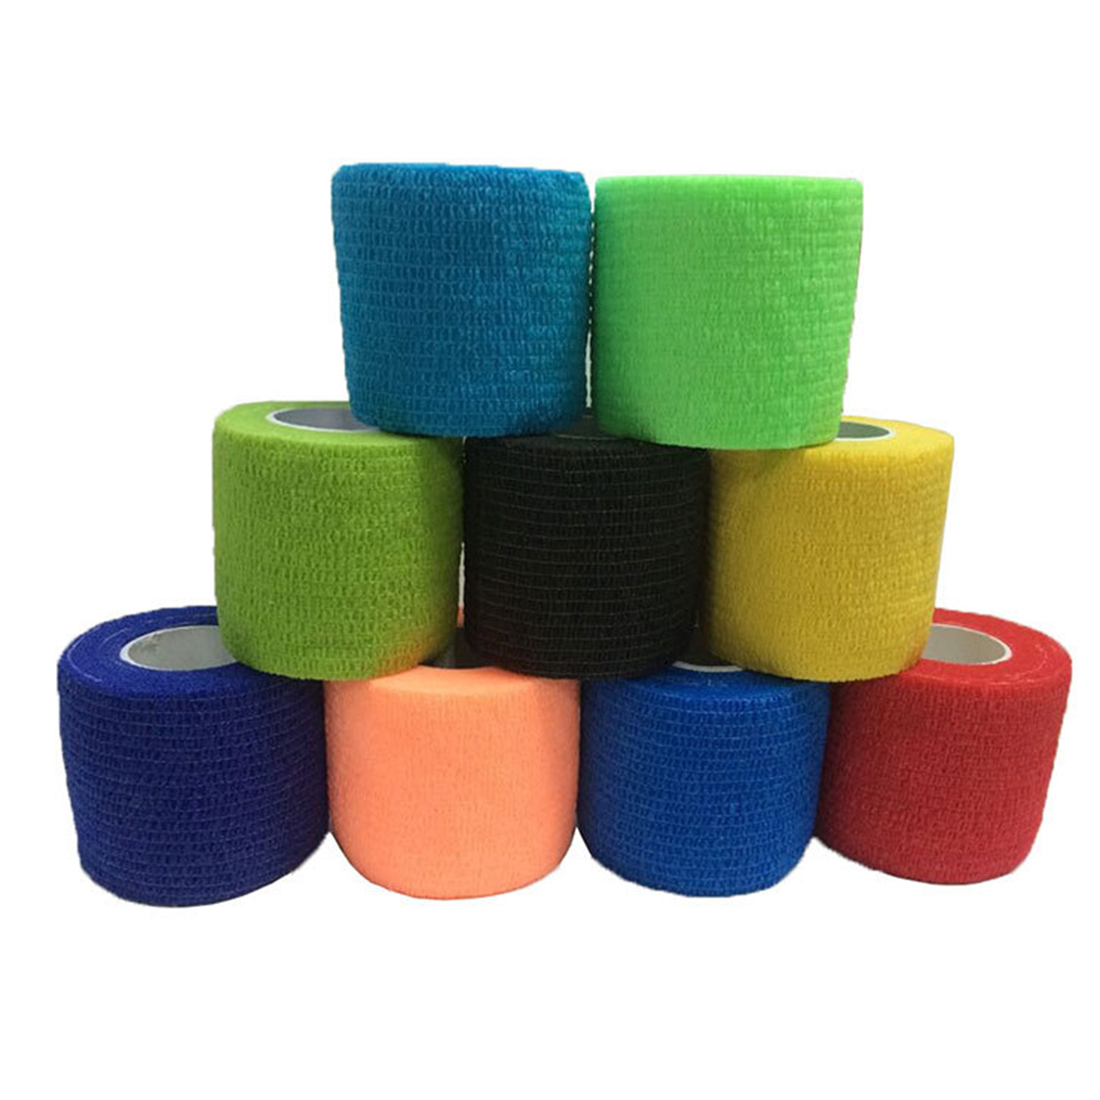 Non-woven Fabric Sports Self Adherent Wrap Tape Medical Elastic Adhesive Bandages 10cm*4.5m